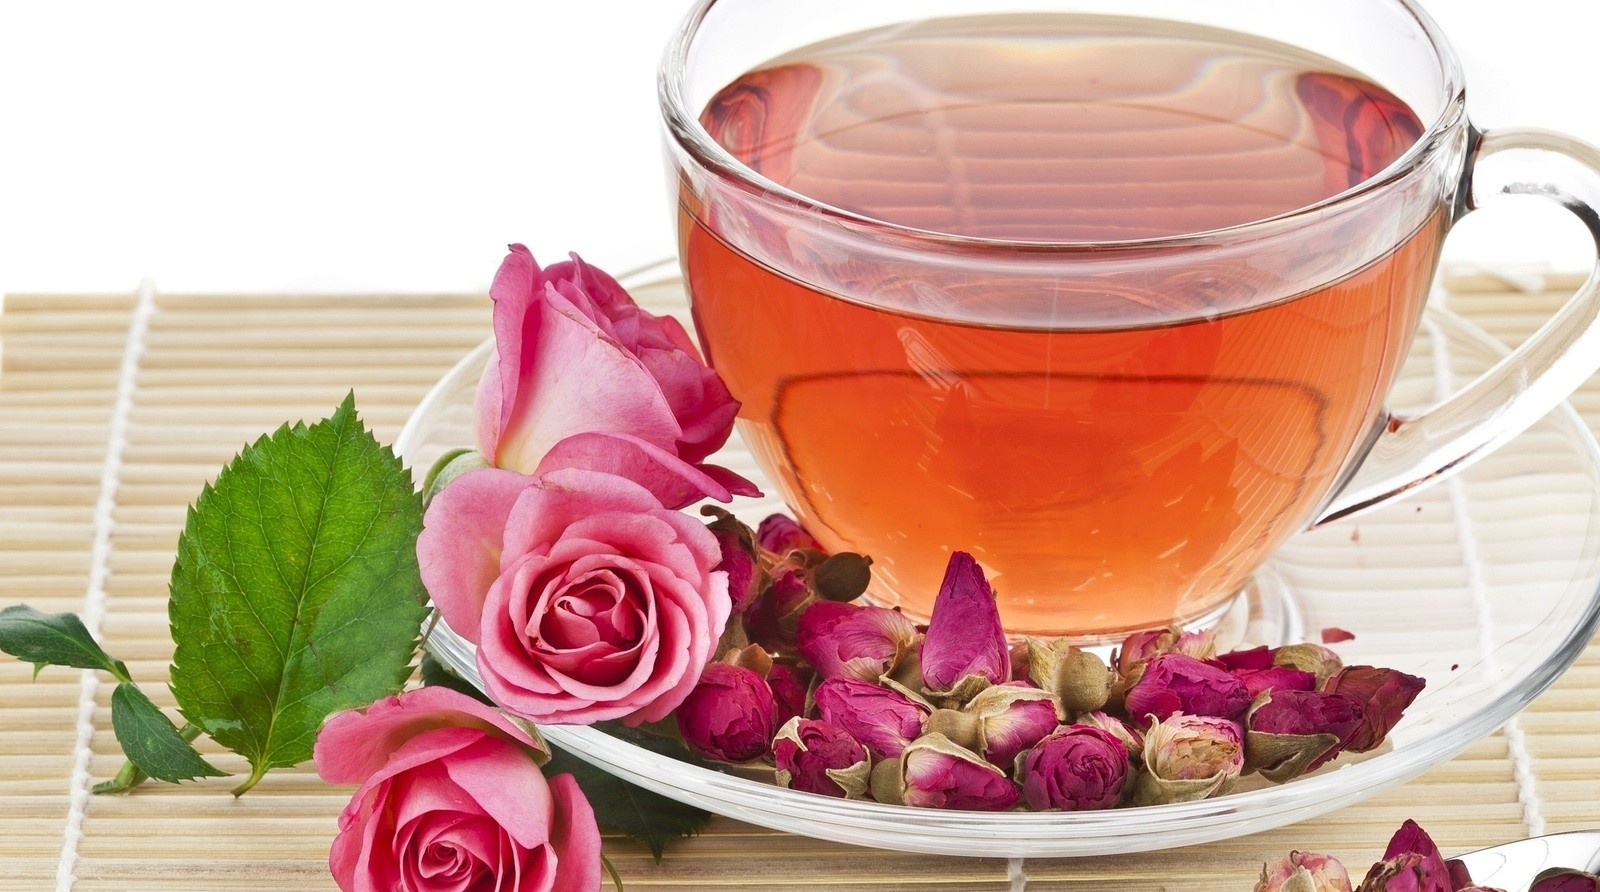 Flavored Tea Market Outlook: Poised For a Strong 2020 | Goodricke Group, Associated British Foods, Goodricke